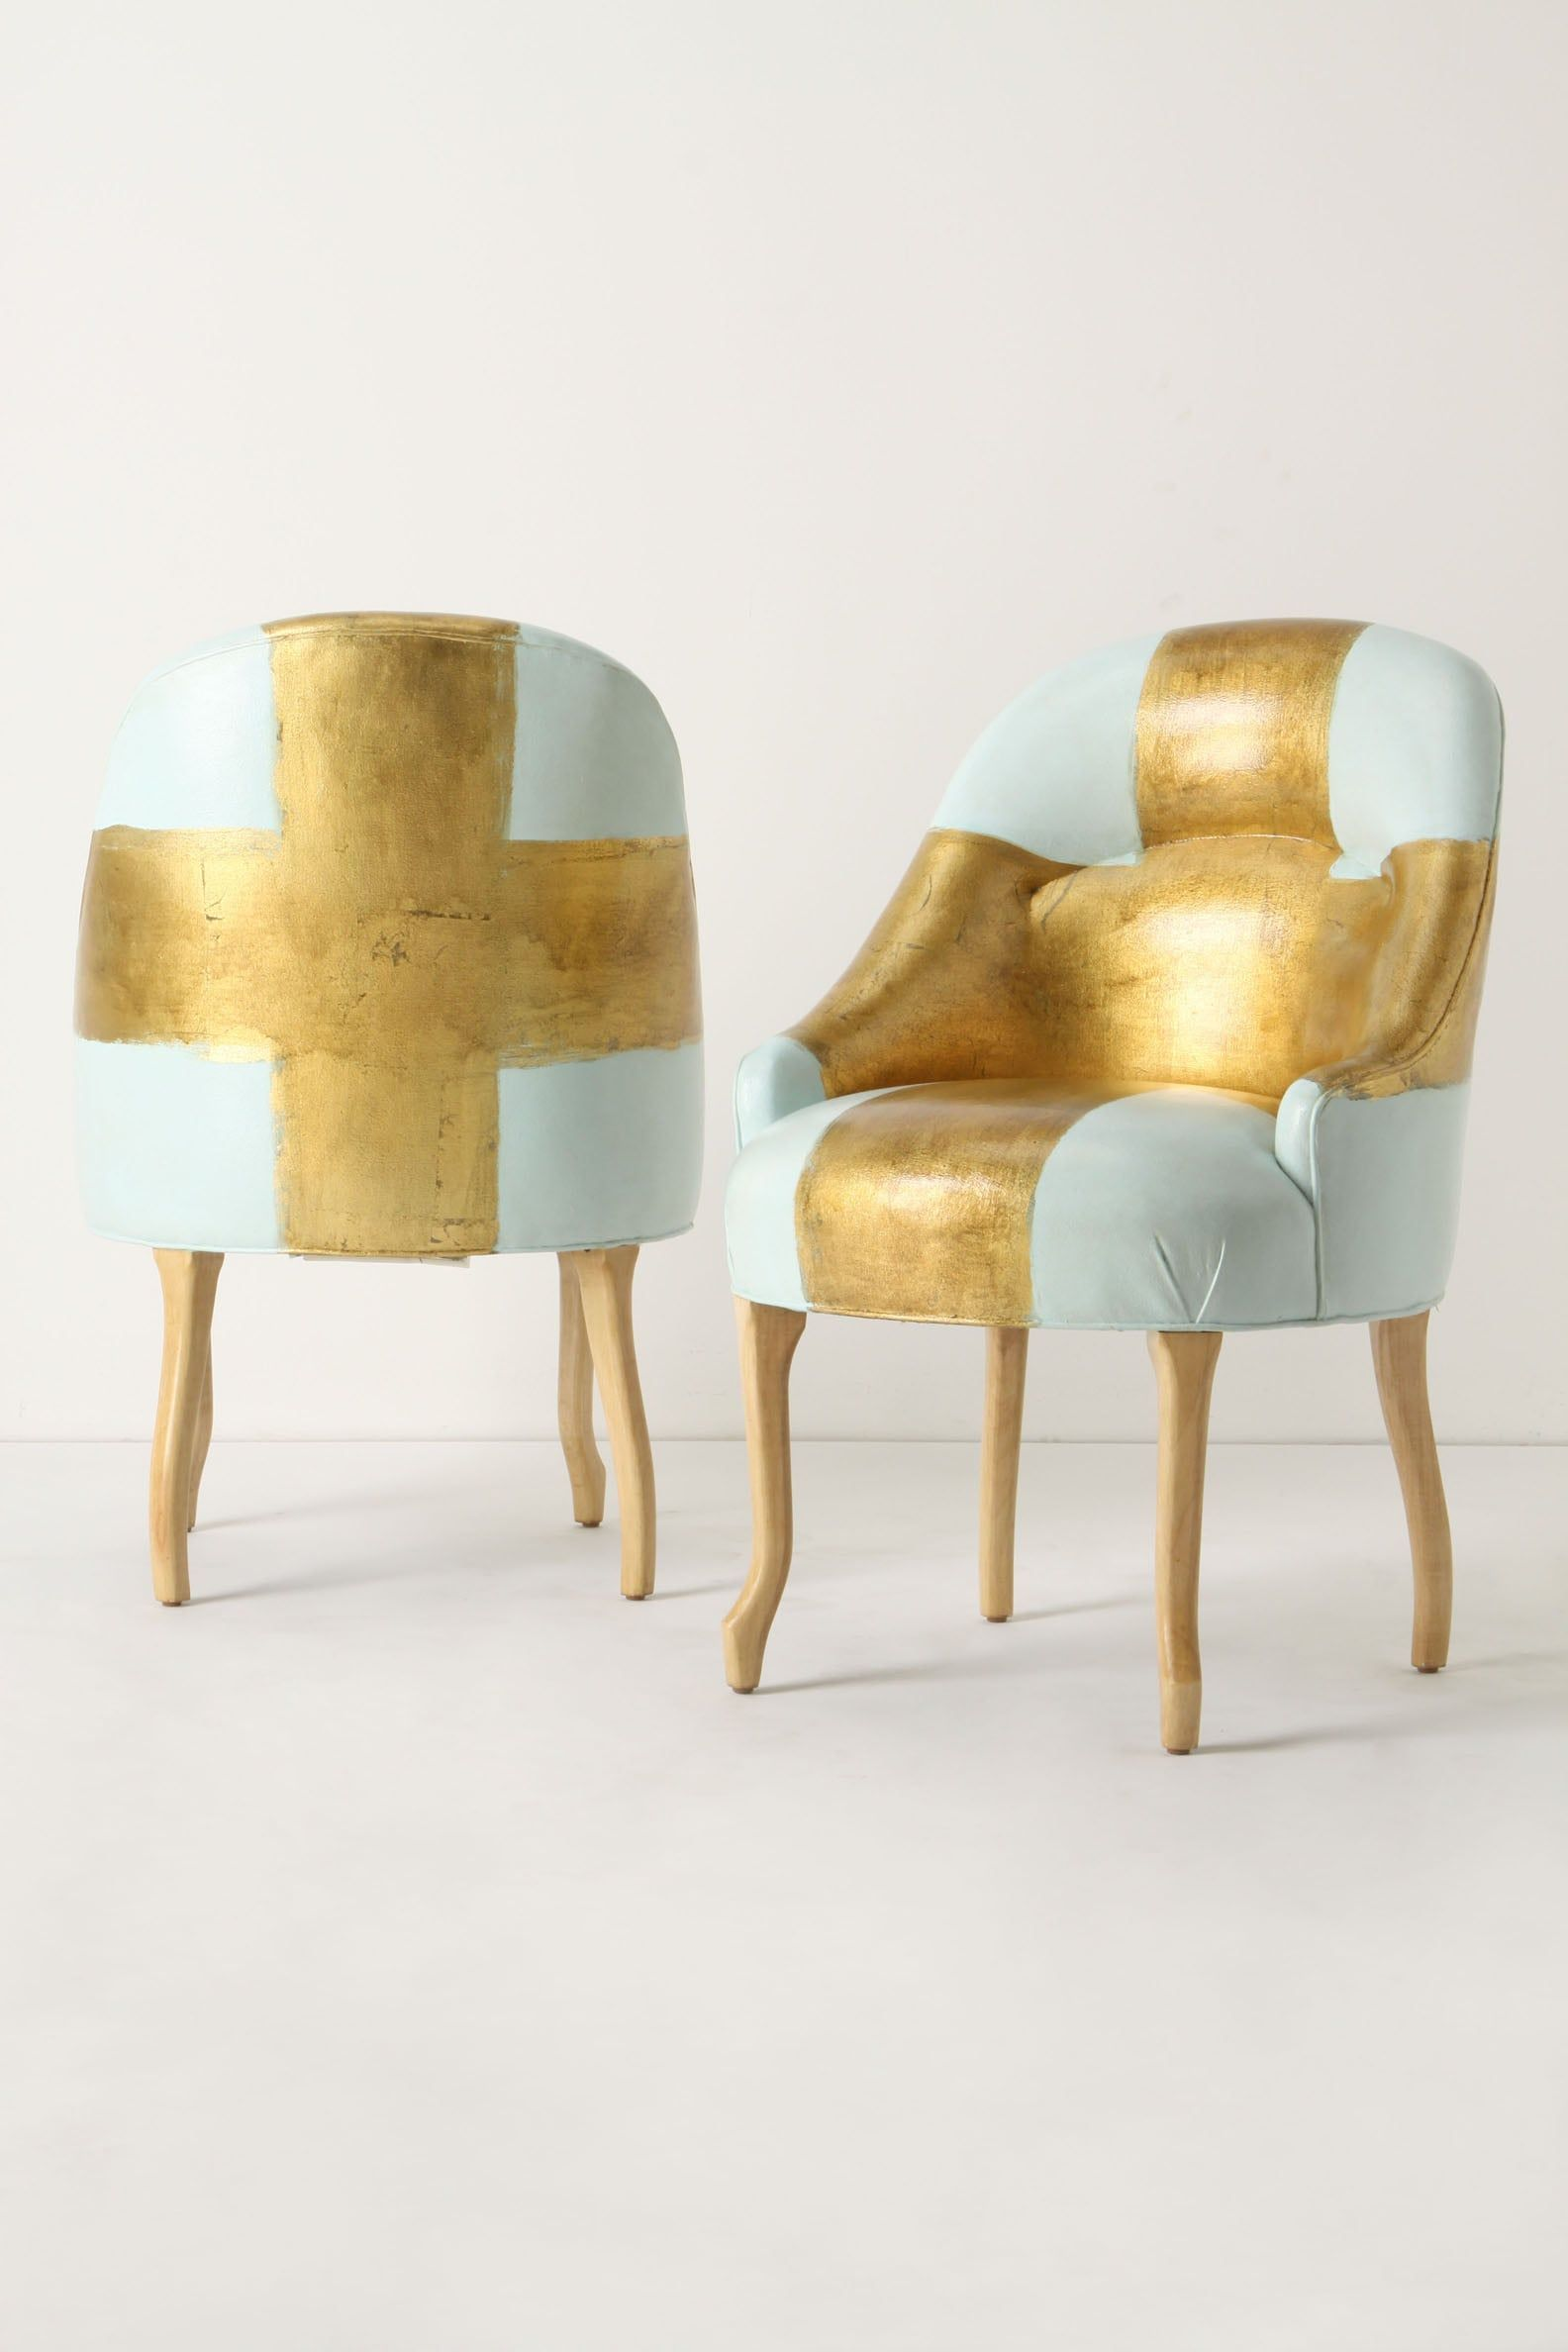 Kaki Foleyu0027s Chairs, Provided By Anthropologie, Are Painted With Gold Metal  Leaf.